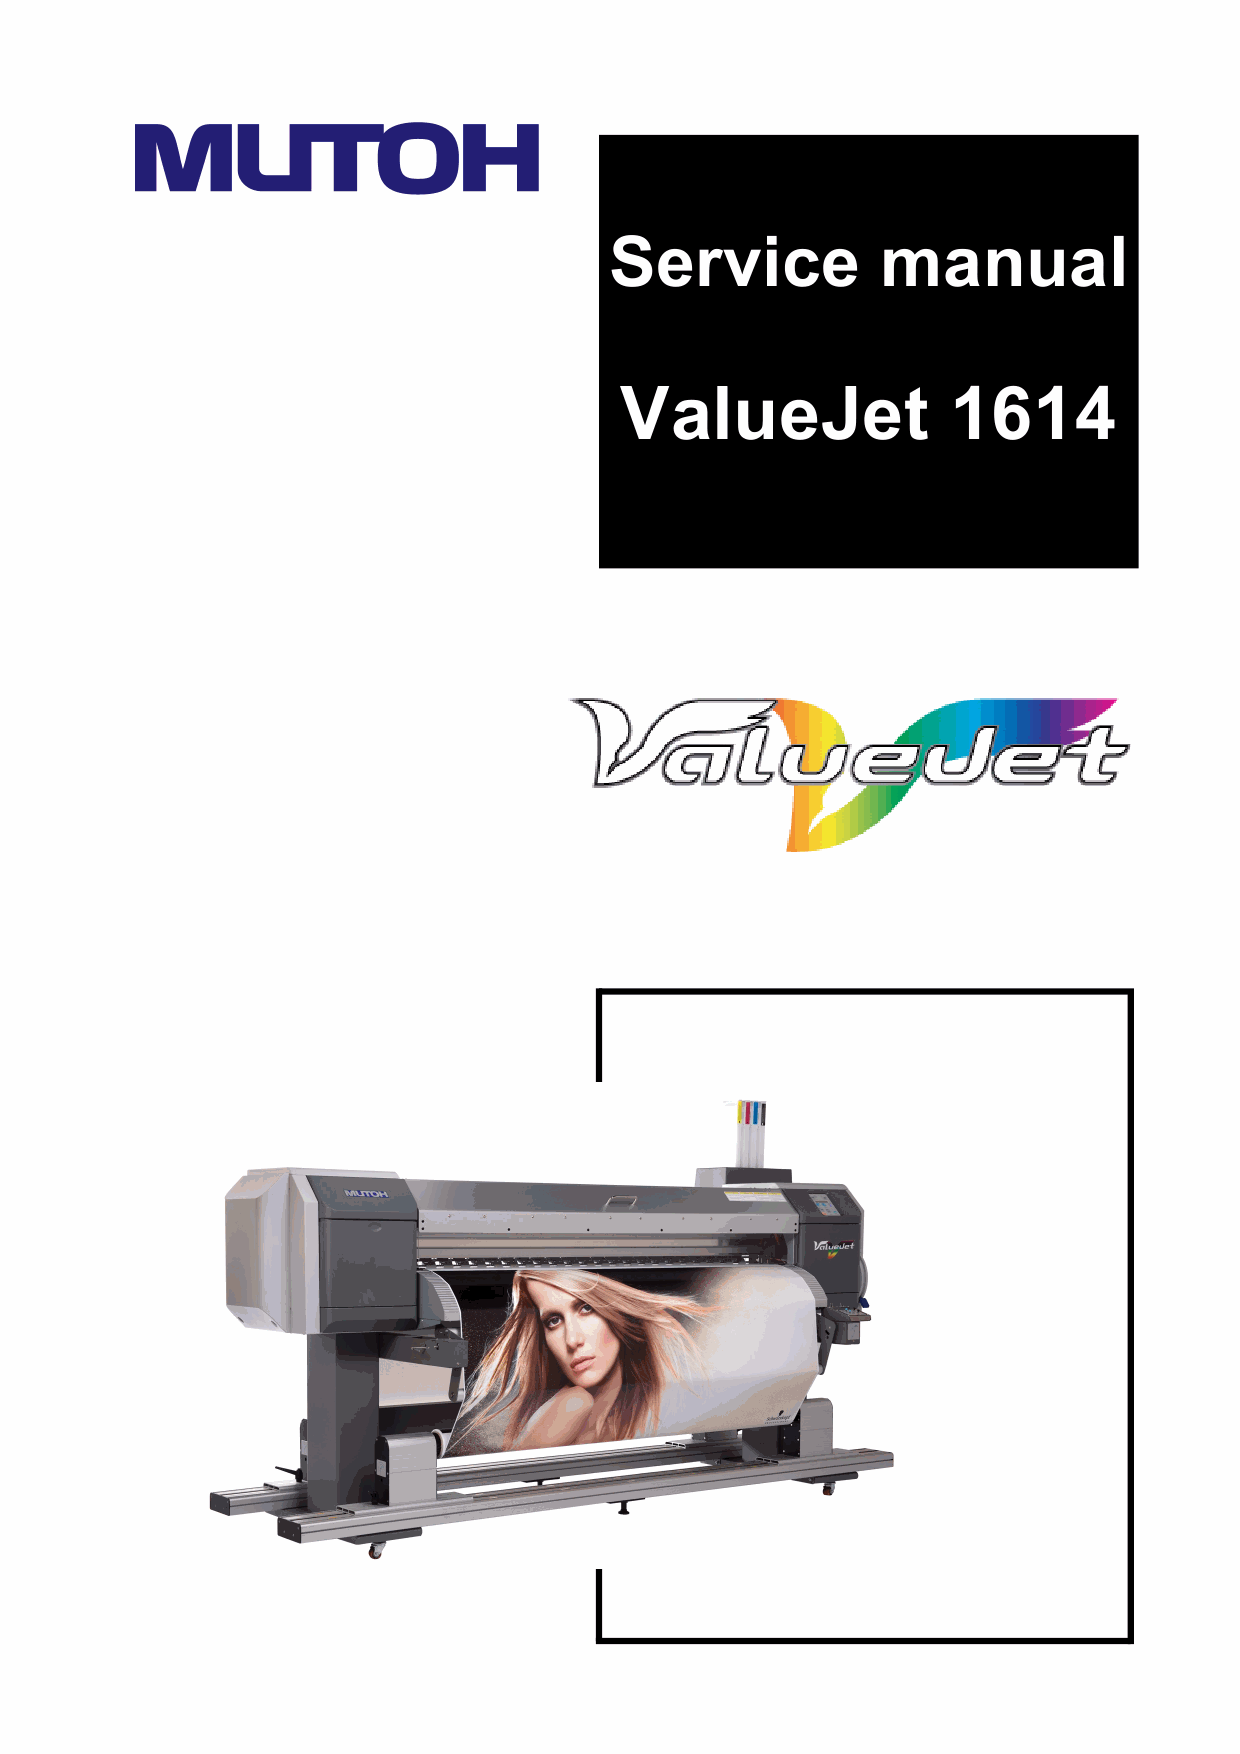 MUTOH ValueJet VJ 1614 Service and Parts Manual-1